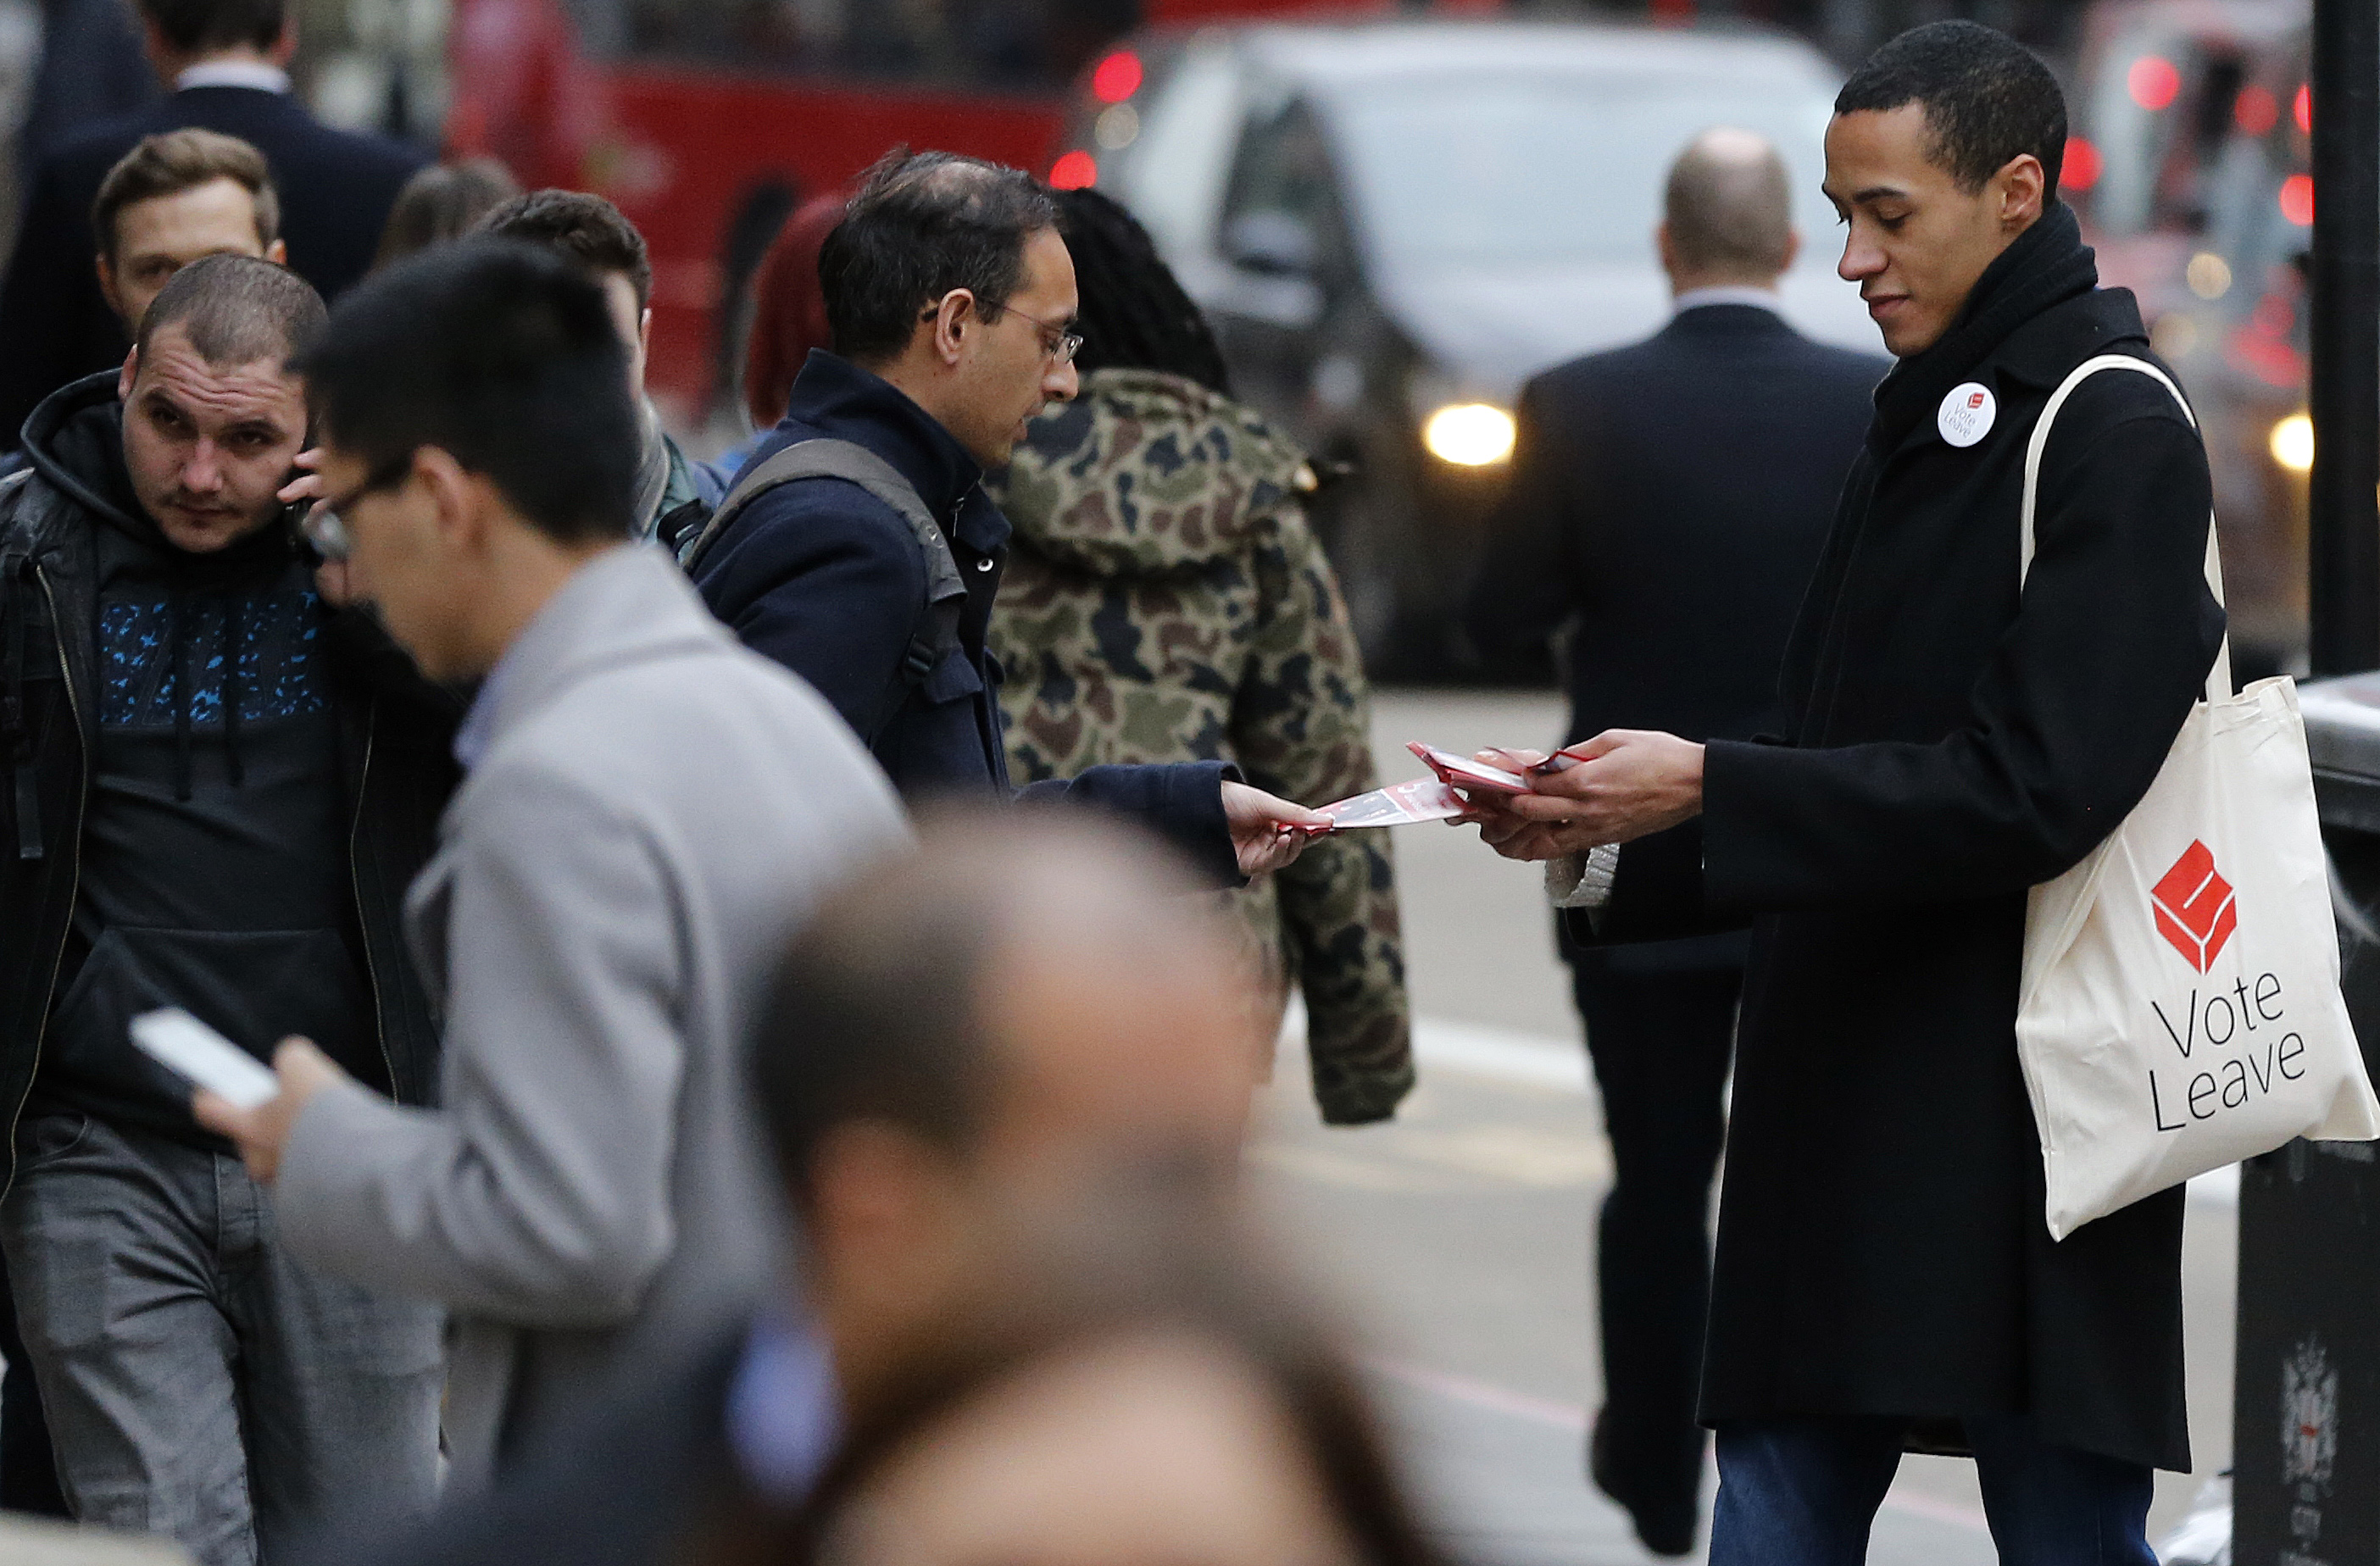 A pro-Brexit campaigner hands out leaflets at Liverpool Street station in London, March 23, 2016. EU officials warn that Britain would be the bigger loser should it decite to leave the bloc.